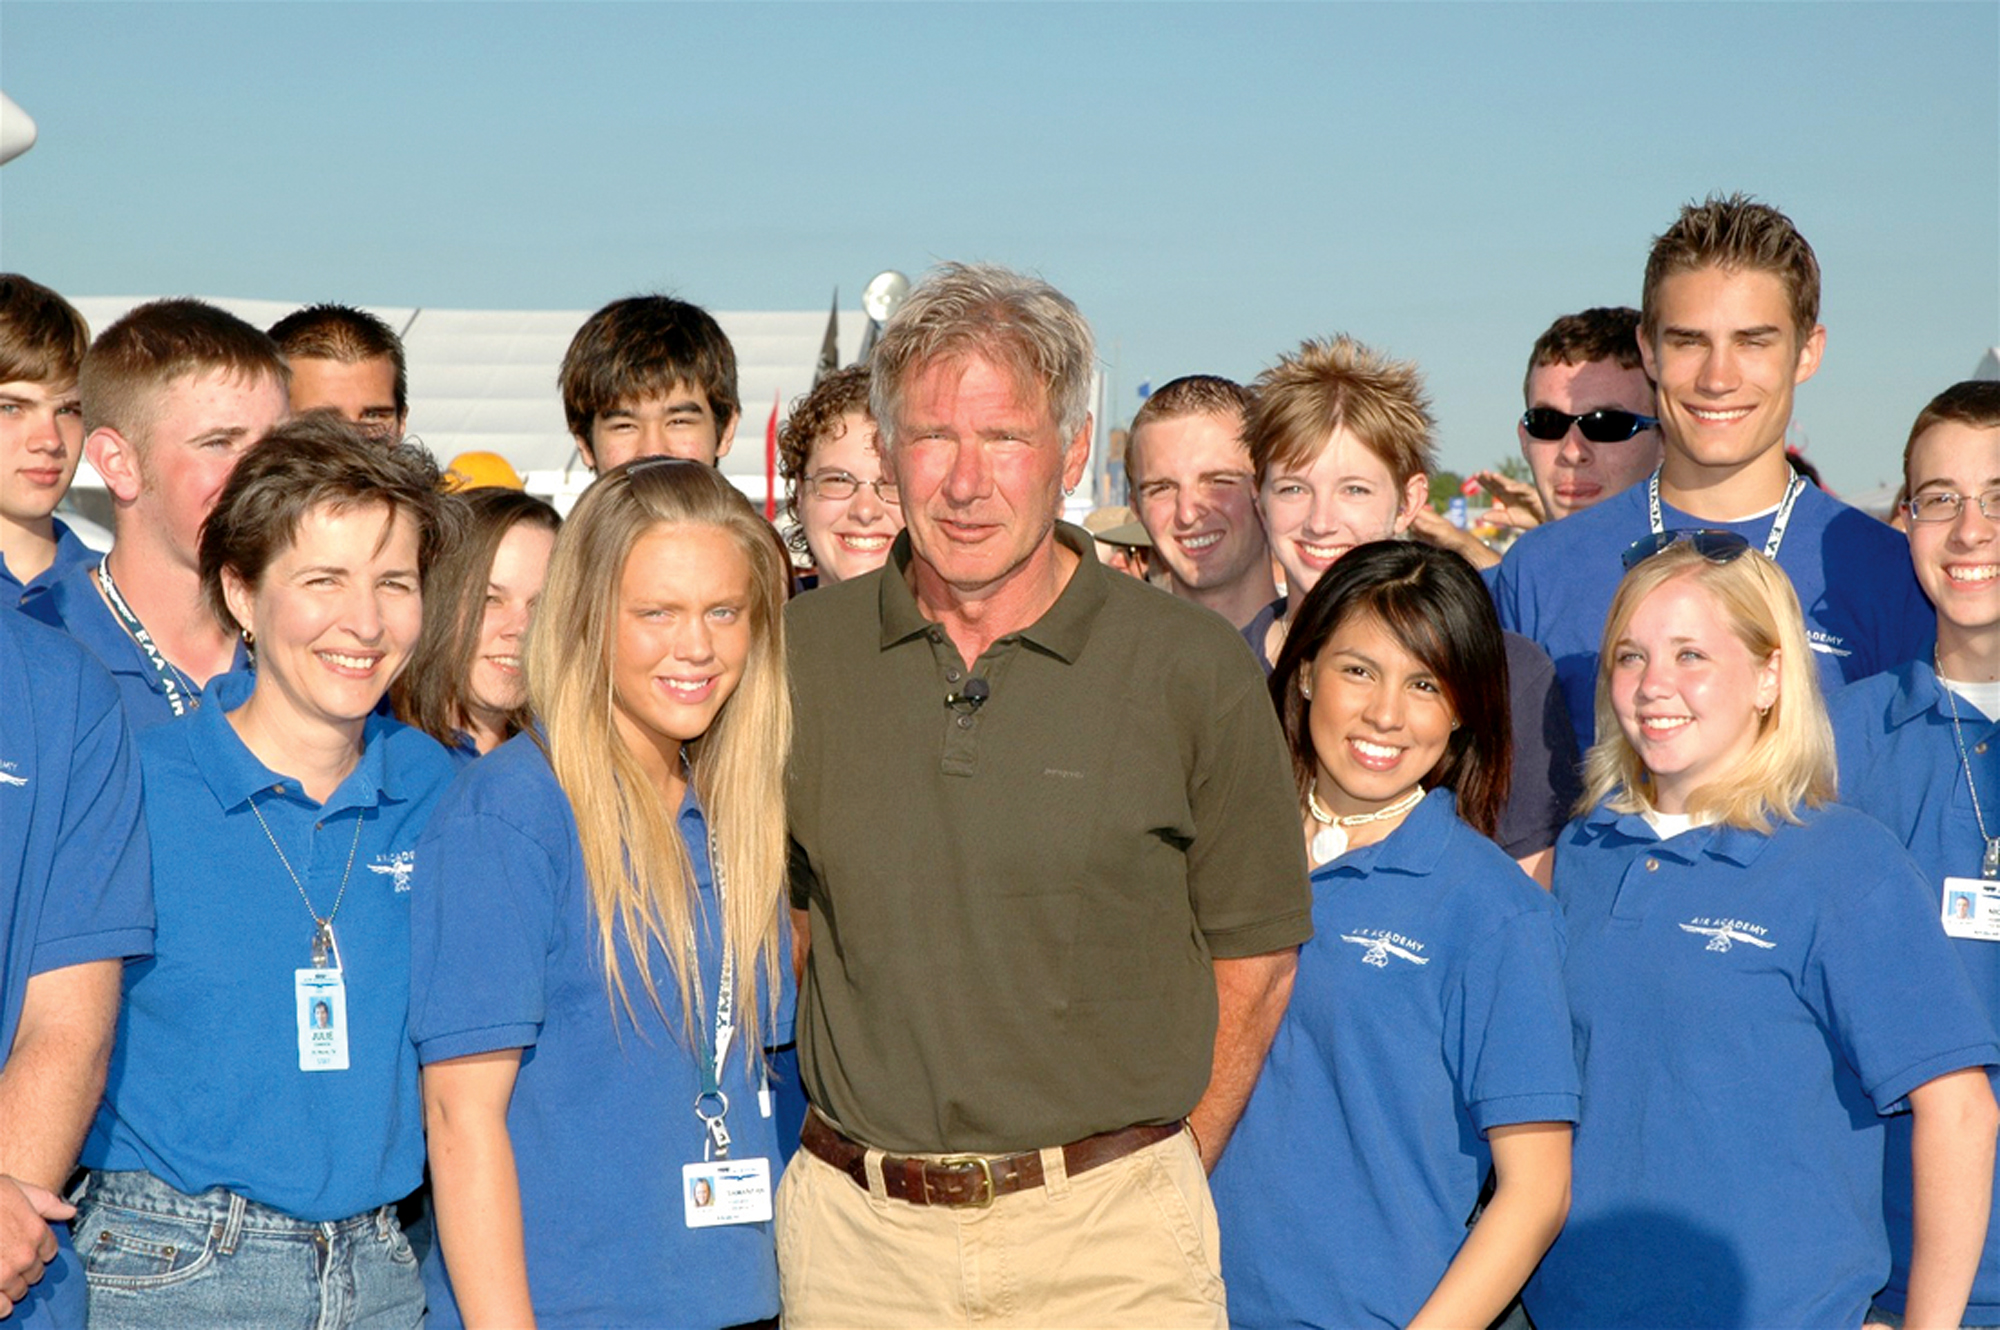 Harrison Ford: Promoting Aviation through Young Eagles